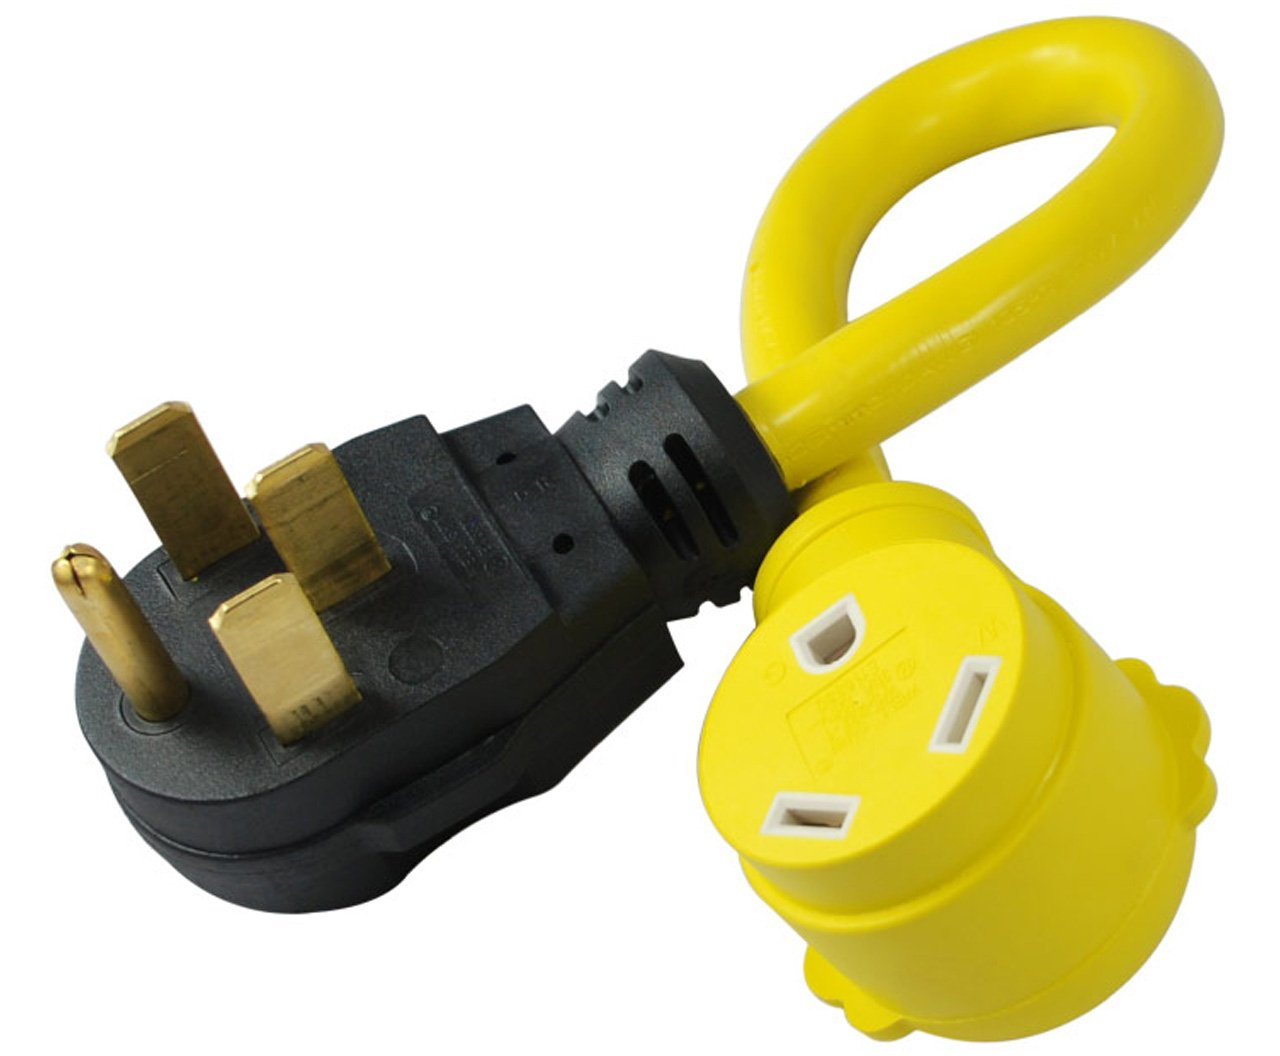 Amazon.com: 50 Amp Male Plug To RV 30 Amp Female Connector Allows a 30A plug to go into a 50A receptacle (useful if a power pedestal only offers a 50A plug in)